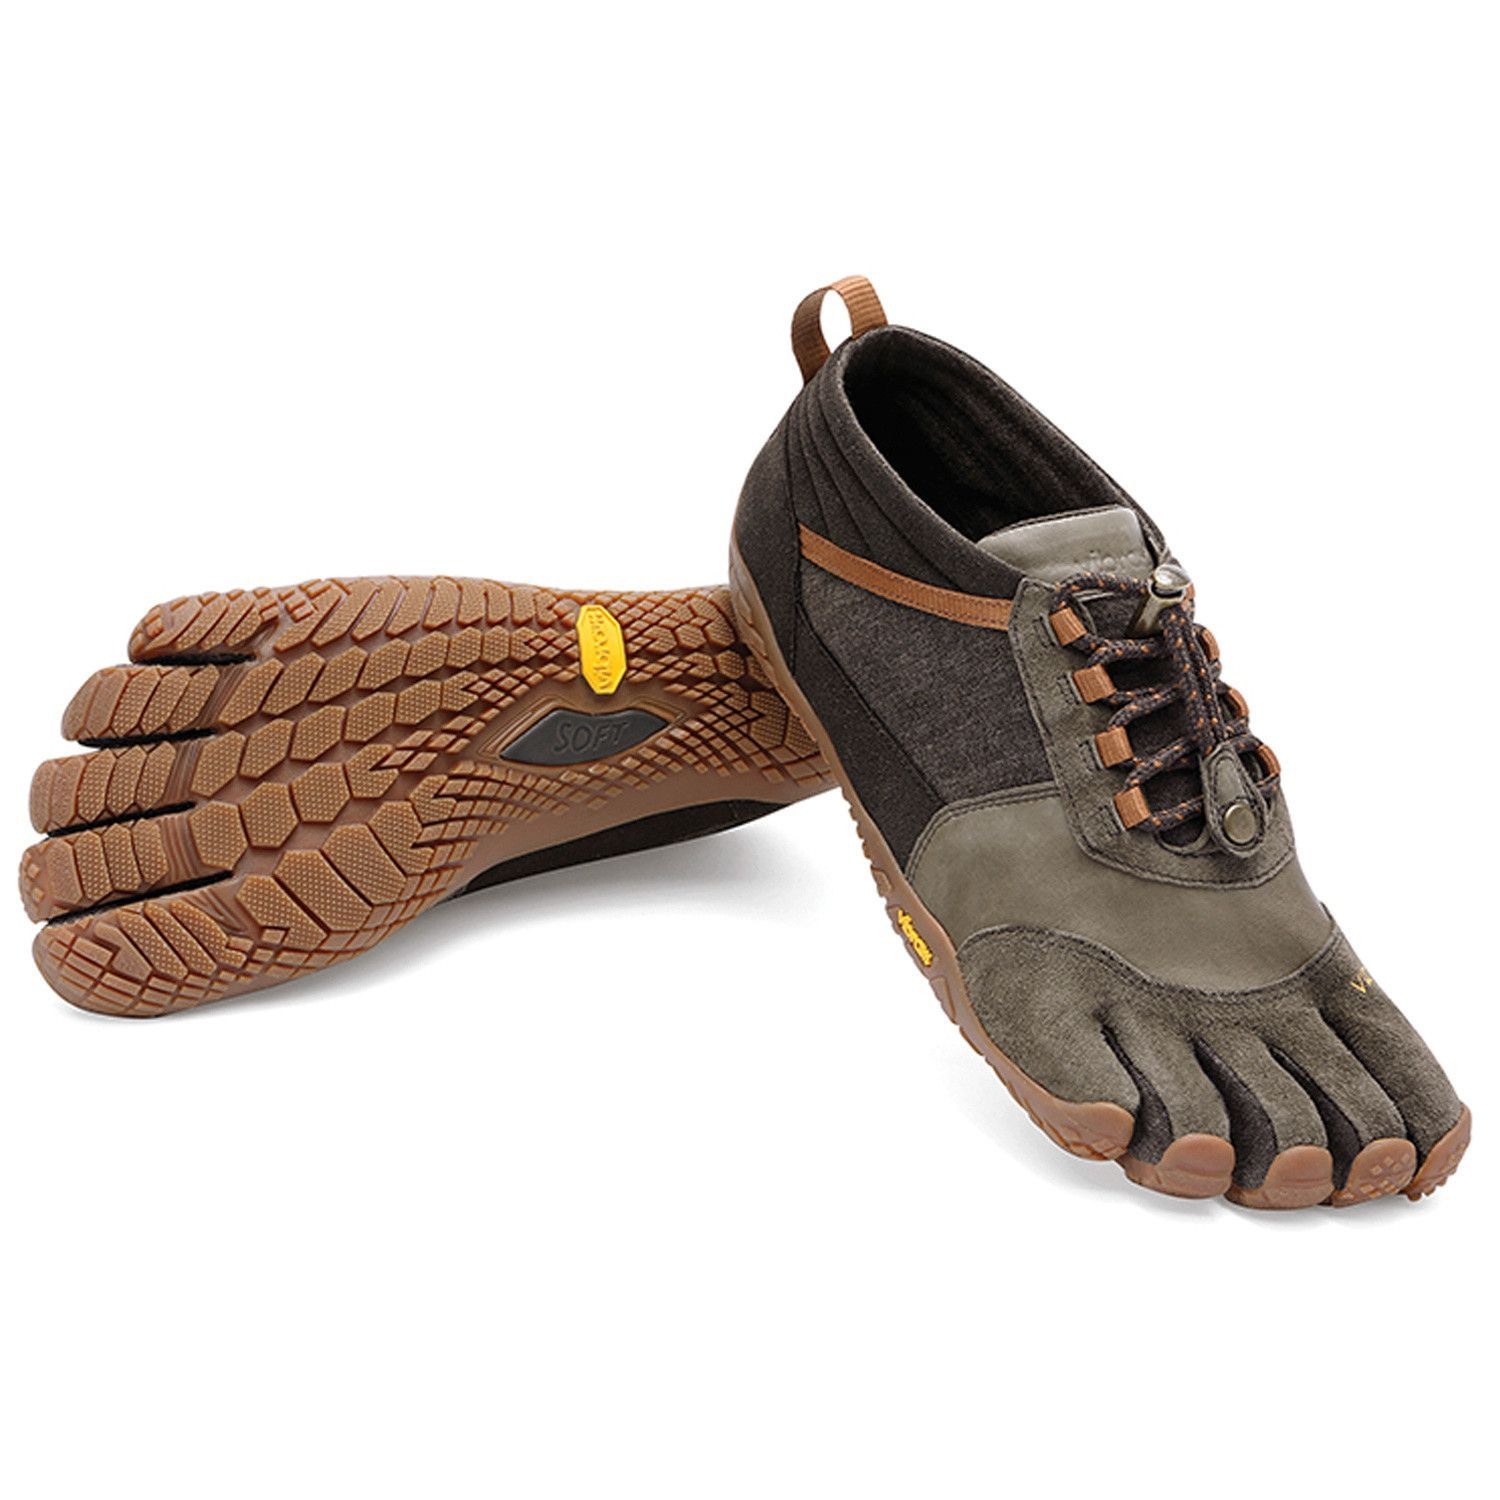 A new introduction to the FiveFingers Family, the women's Trek Ascent LR is  a rugged minimalist shoe designed for hiking tough terrain.